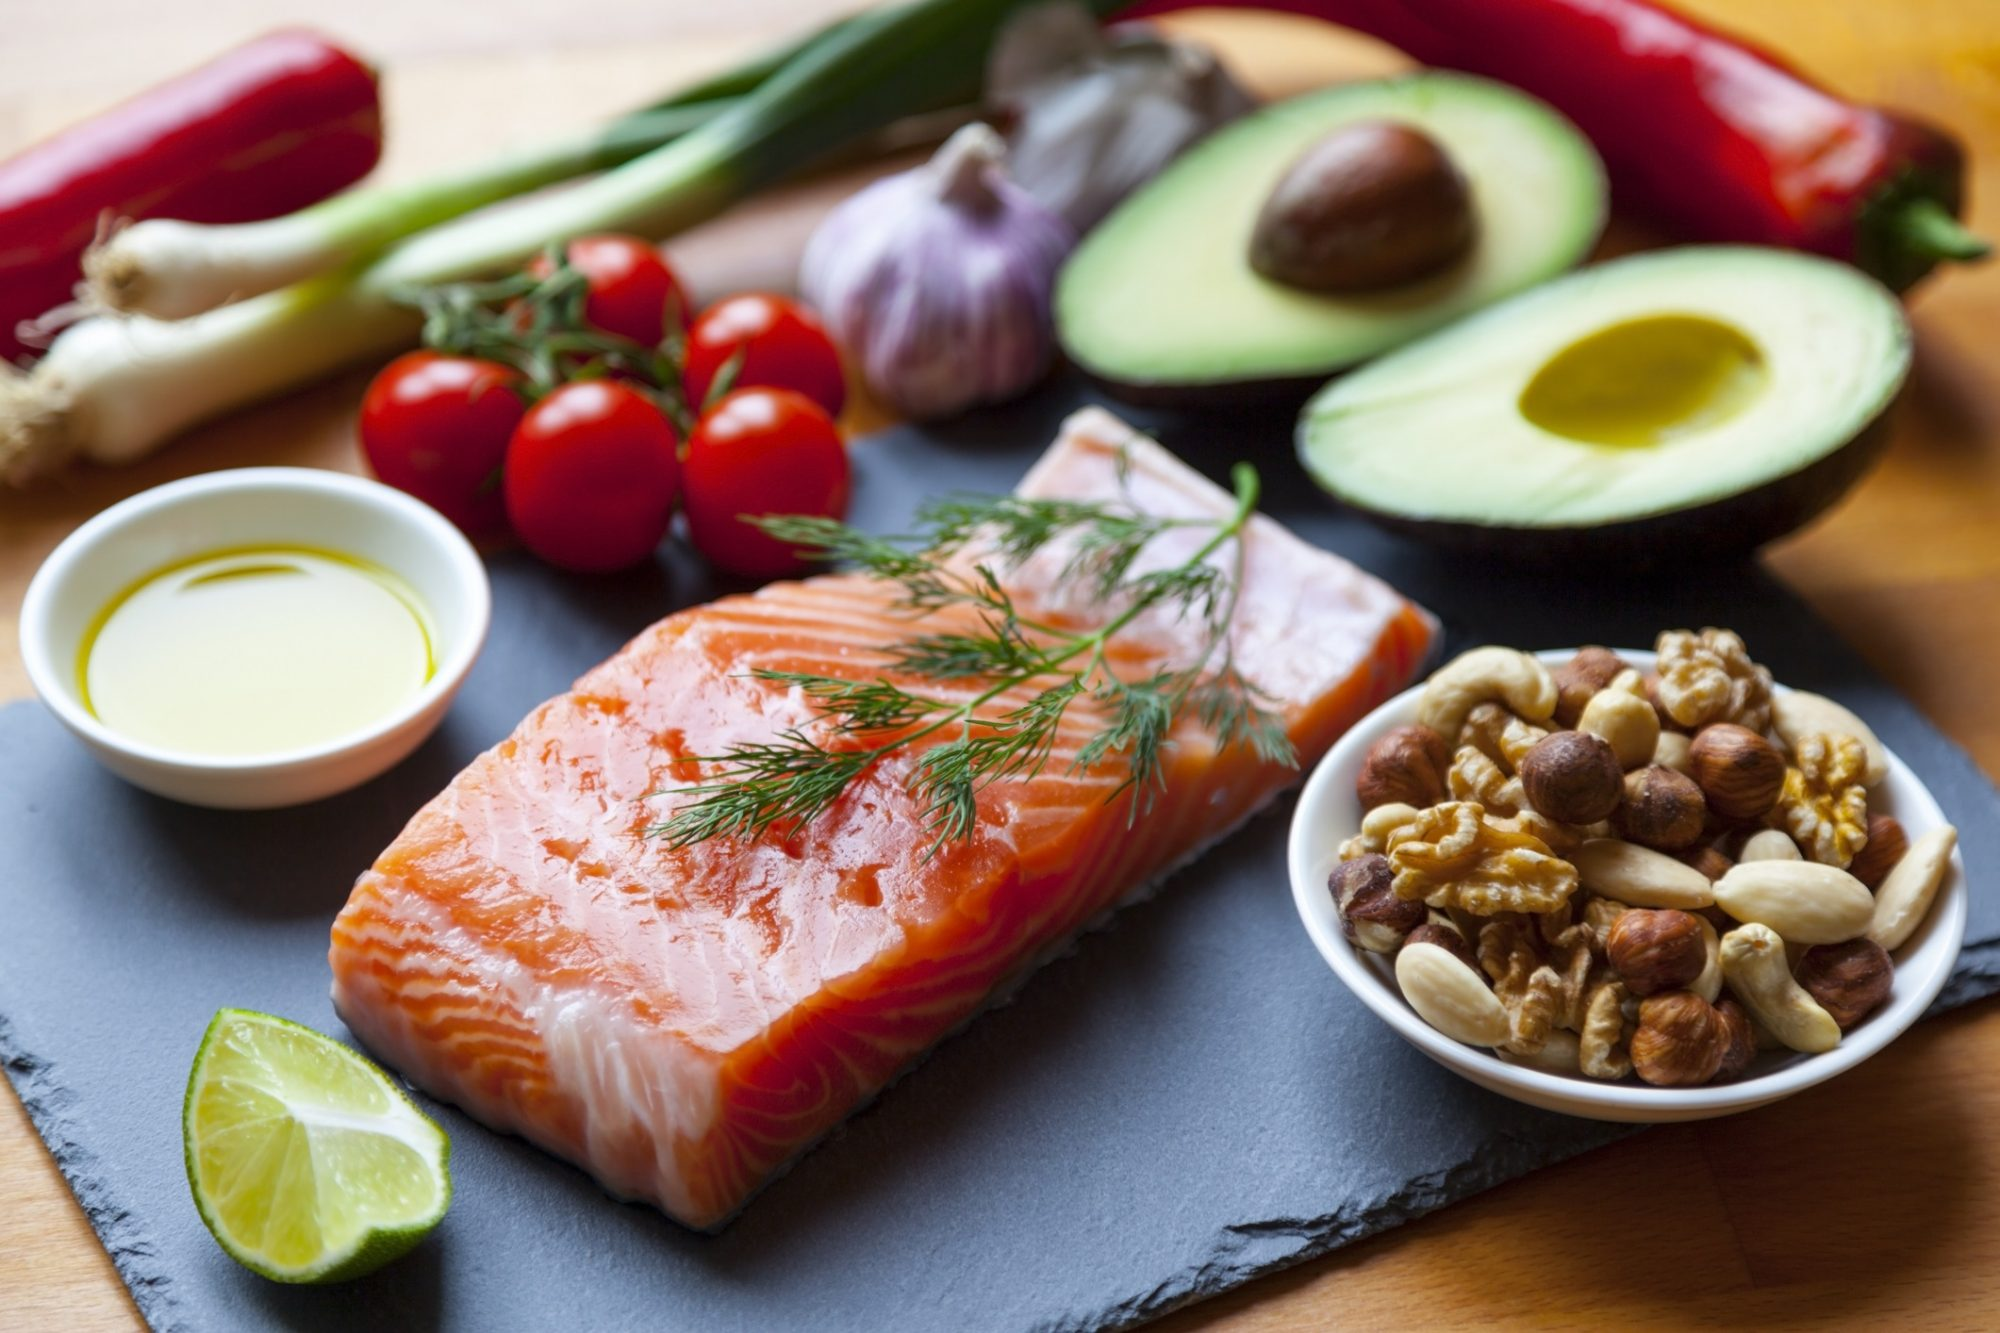 foods for the mediterranean diet salmon nuts citrus tomatoes avocado garlic green onion peppers